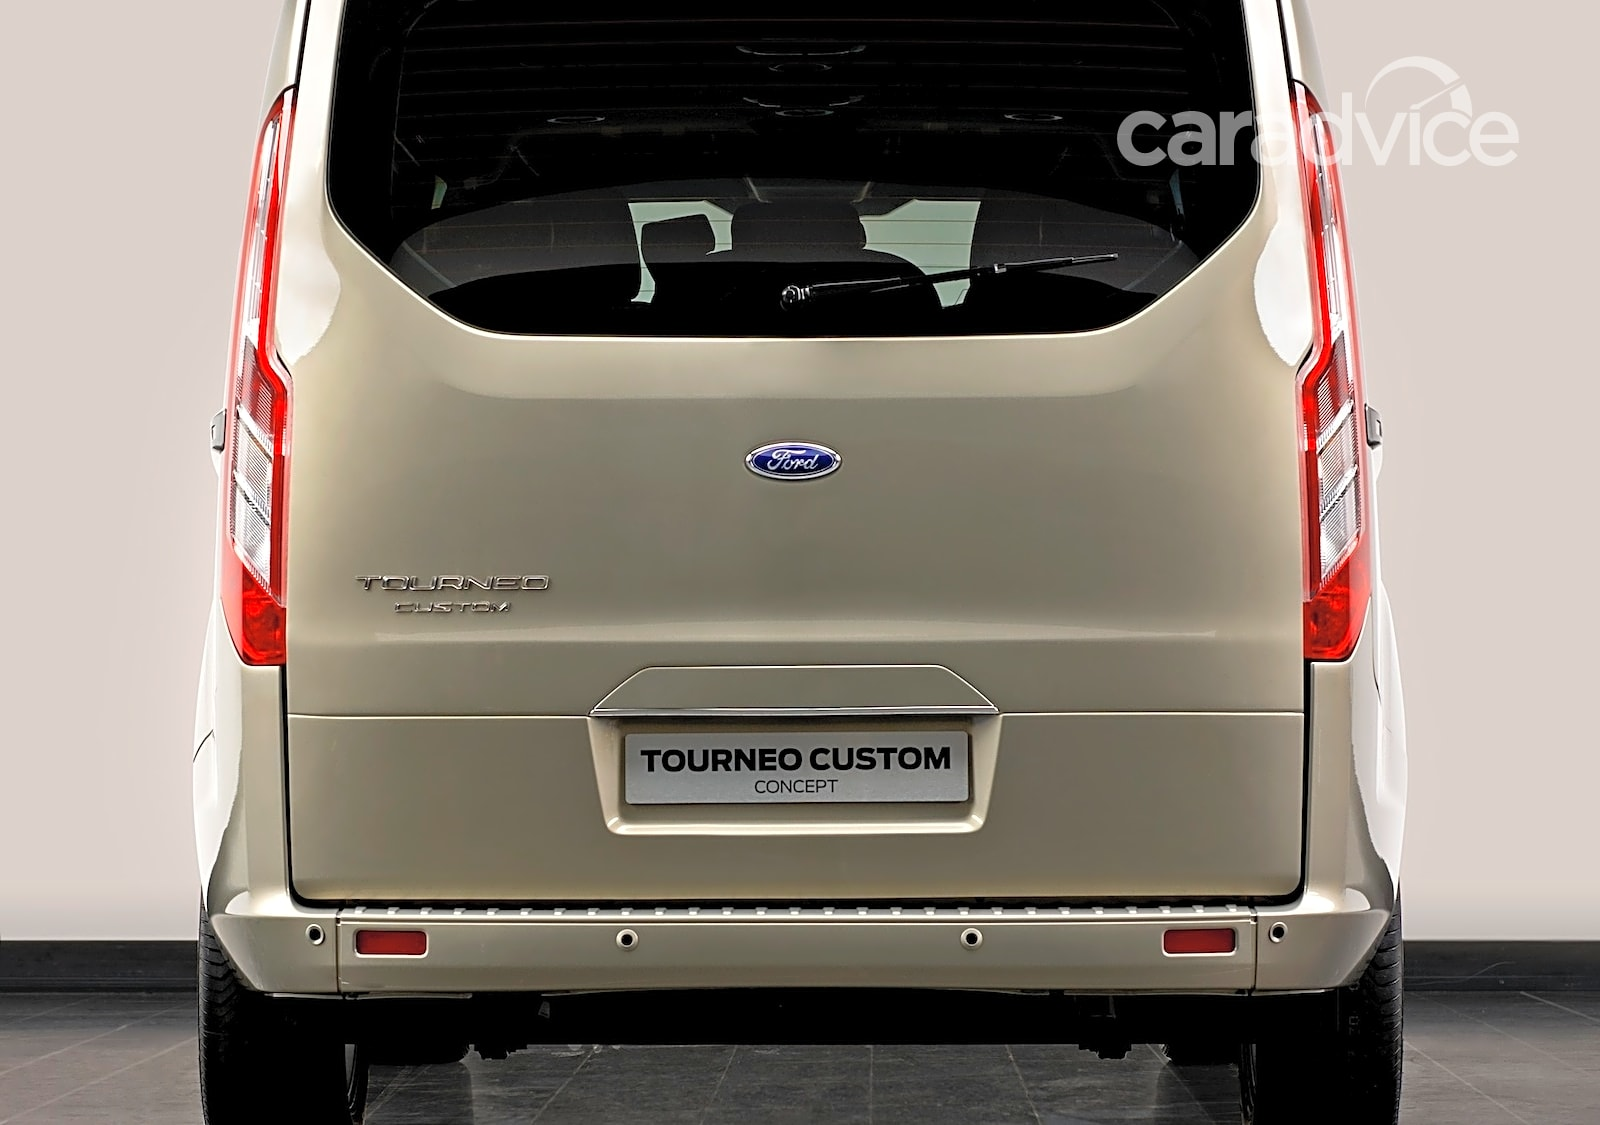 ford australia says no to tourneo people mover